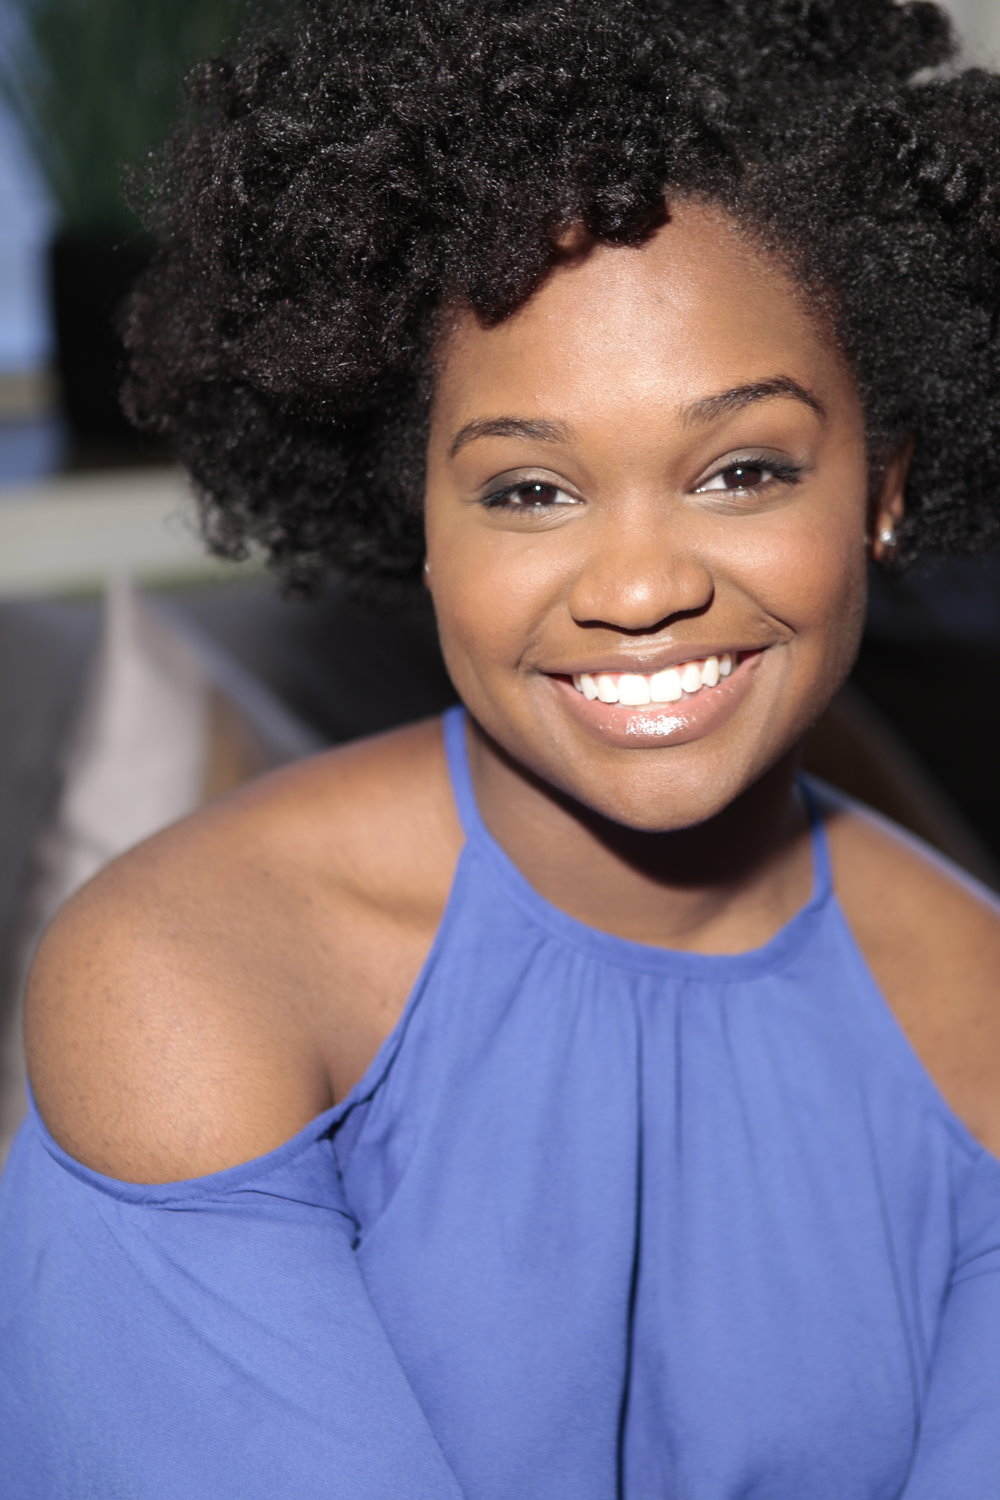 DEIDRE STAPLES (The Child)   Pointless Premiere!  The Wolves  (u/s #8/ Studio Theatre),  Eclipsed  (The Girl/Howard University),  A Midsummer Night's Dream  (Flute/Howard University). Brace yourselves, Spring is coming!